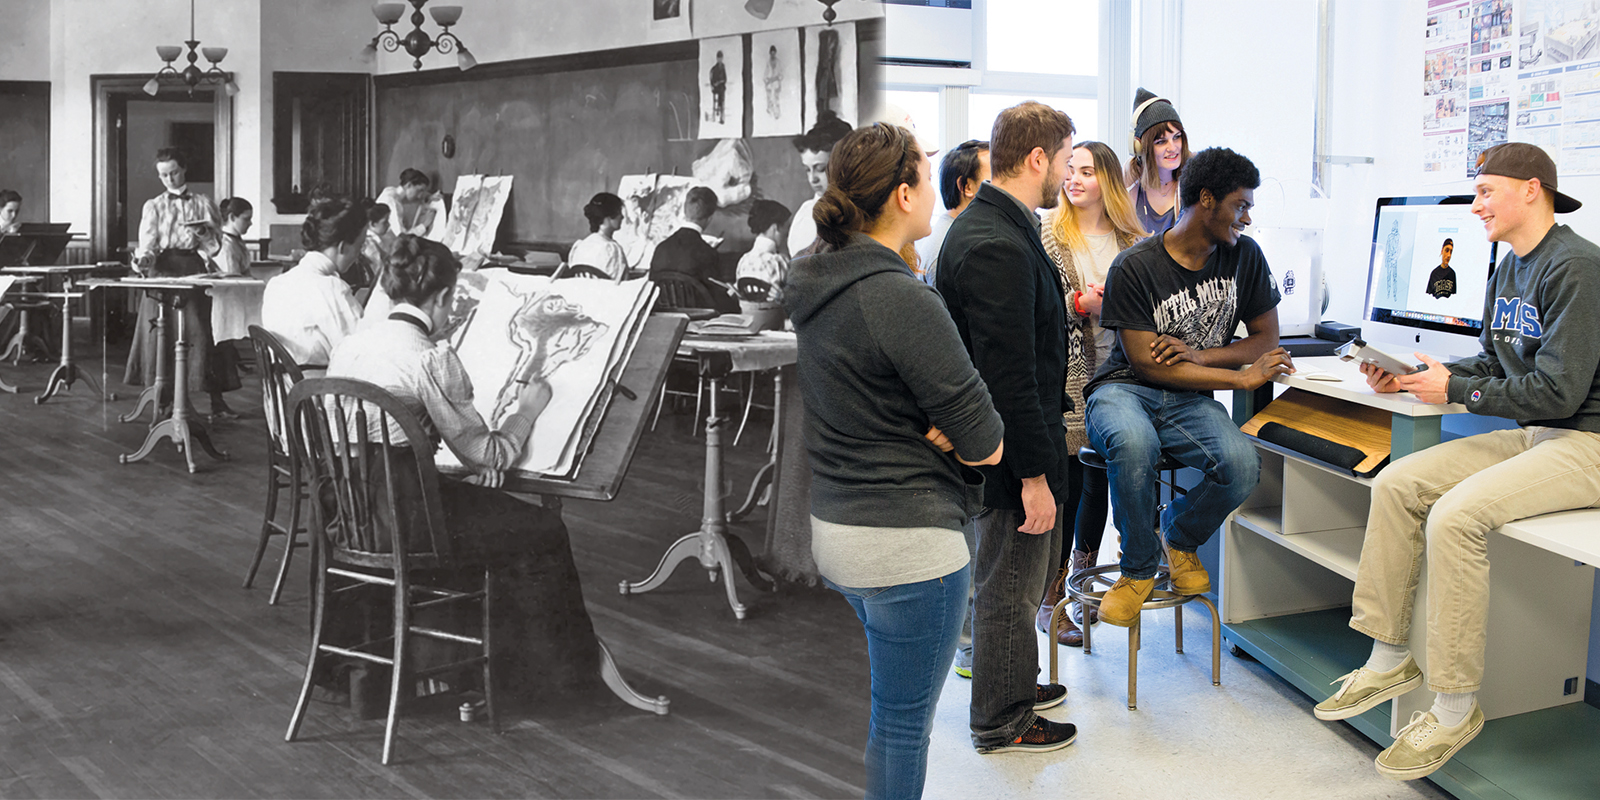 On the left, a black and white photo of Lowell Normal School students at the turn of the century sketching during a drawing class on the third floor of Coburn Hall. On the right, art and design students gather around a computer in the new Expanded Media Fabrication Laboratory in Dugan Hall.